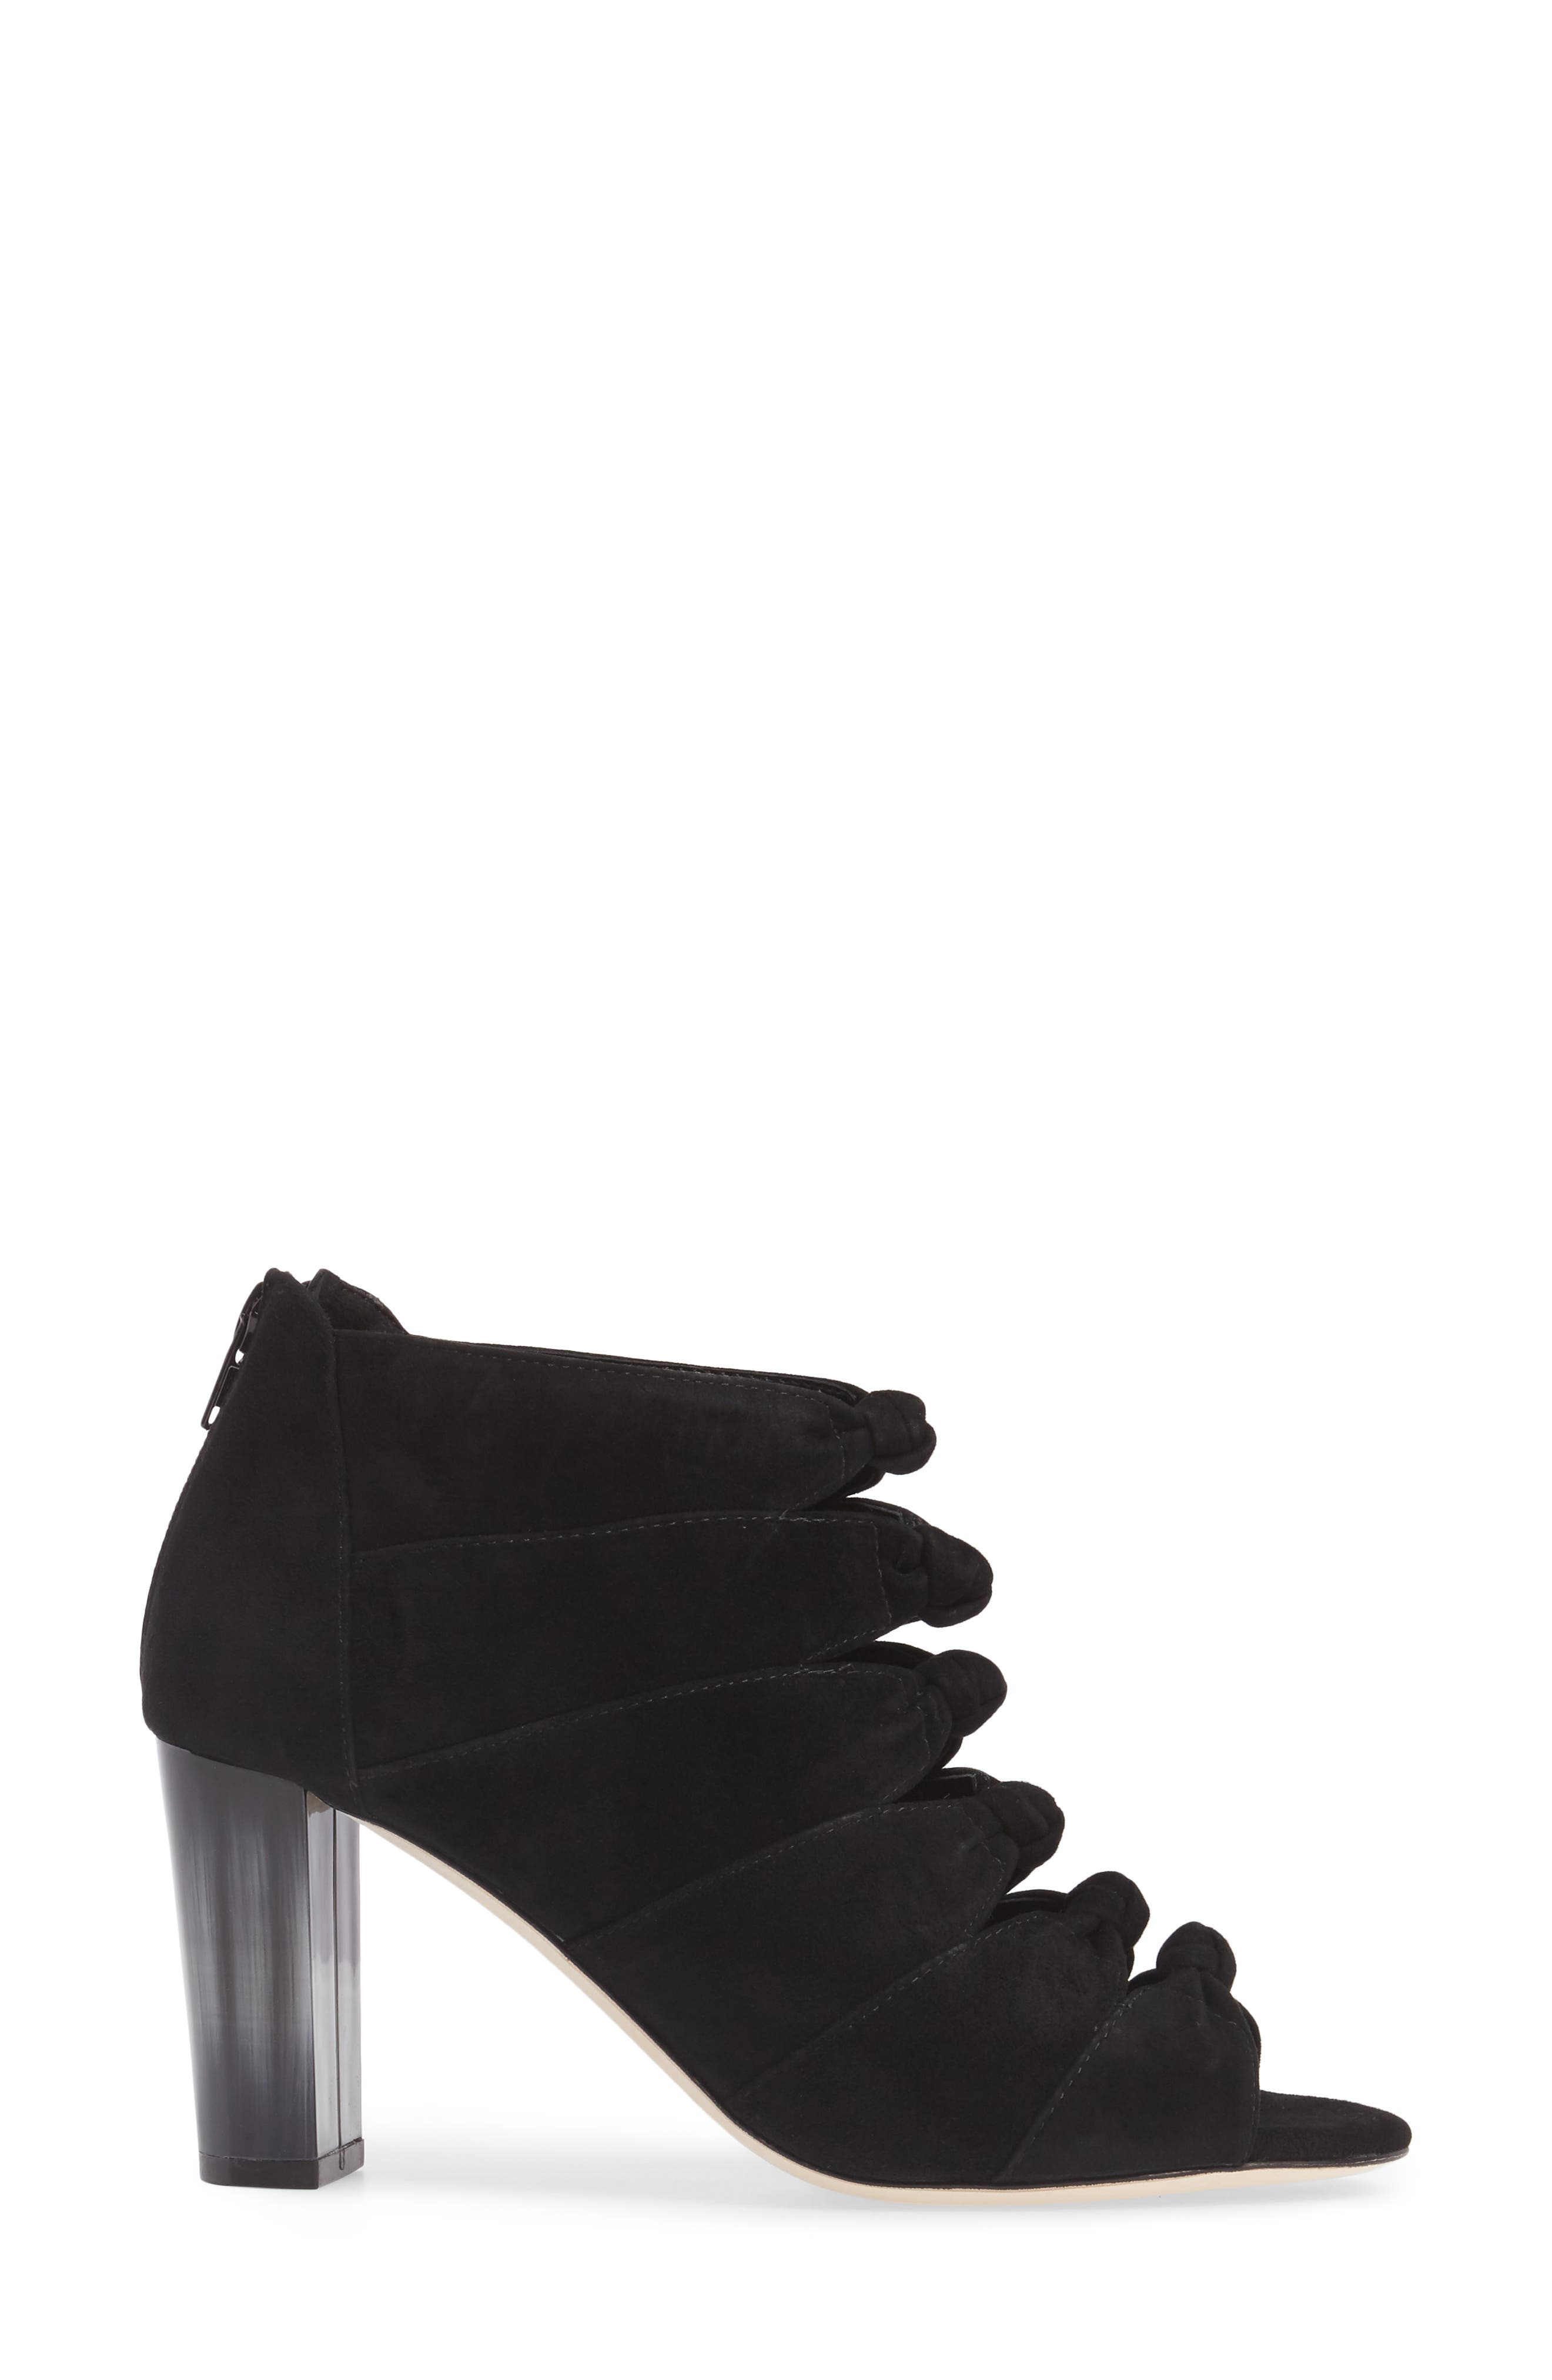 Betsy Open Toe Bootie,                             Alternate thumbnail 3, color,                             Black Suede